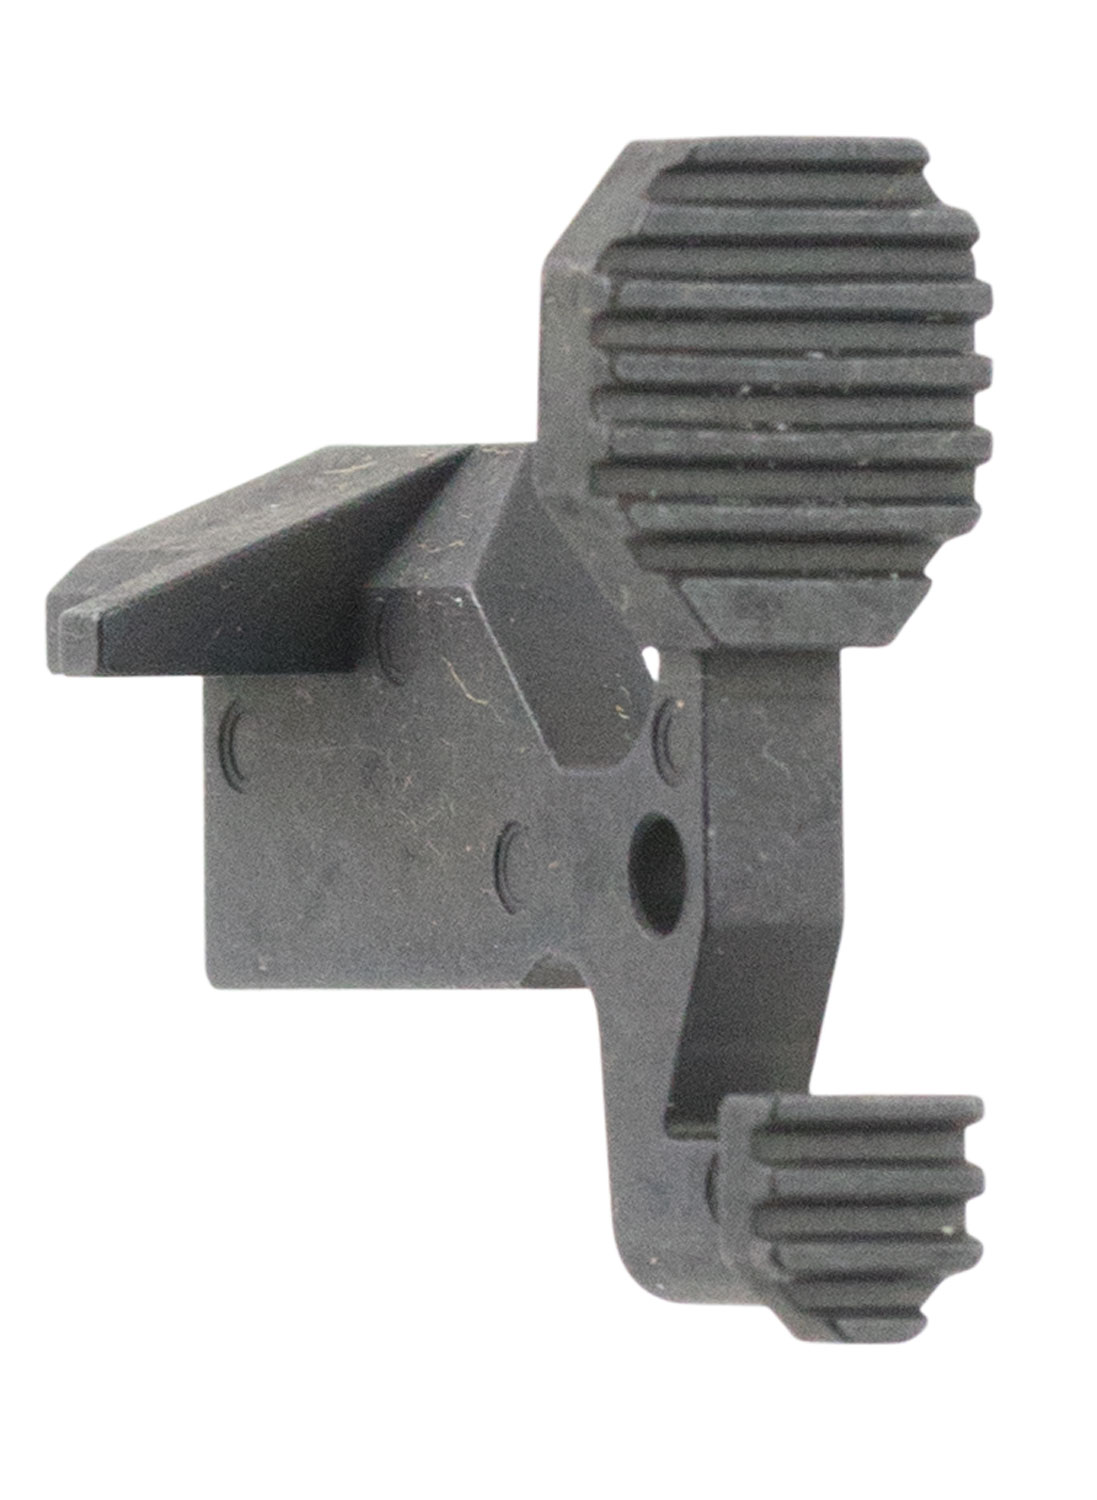 Tacfire Bolt Catch Release Lever For Ar 15 Rifle Black Mar097 Palmetto State Armory